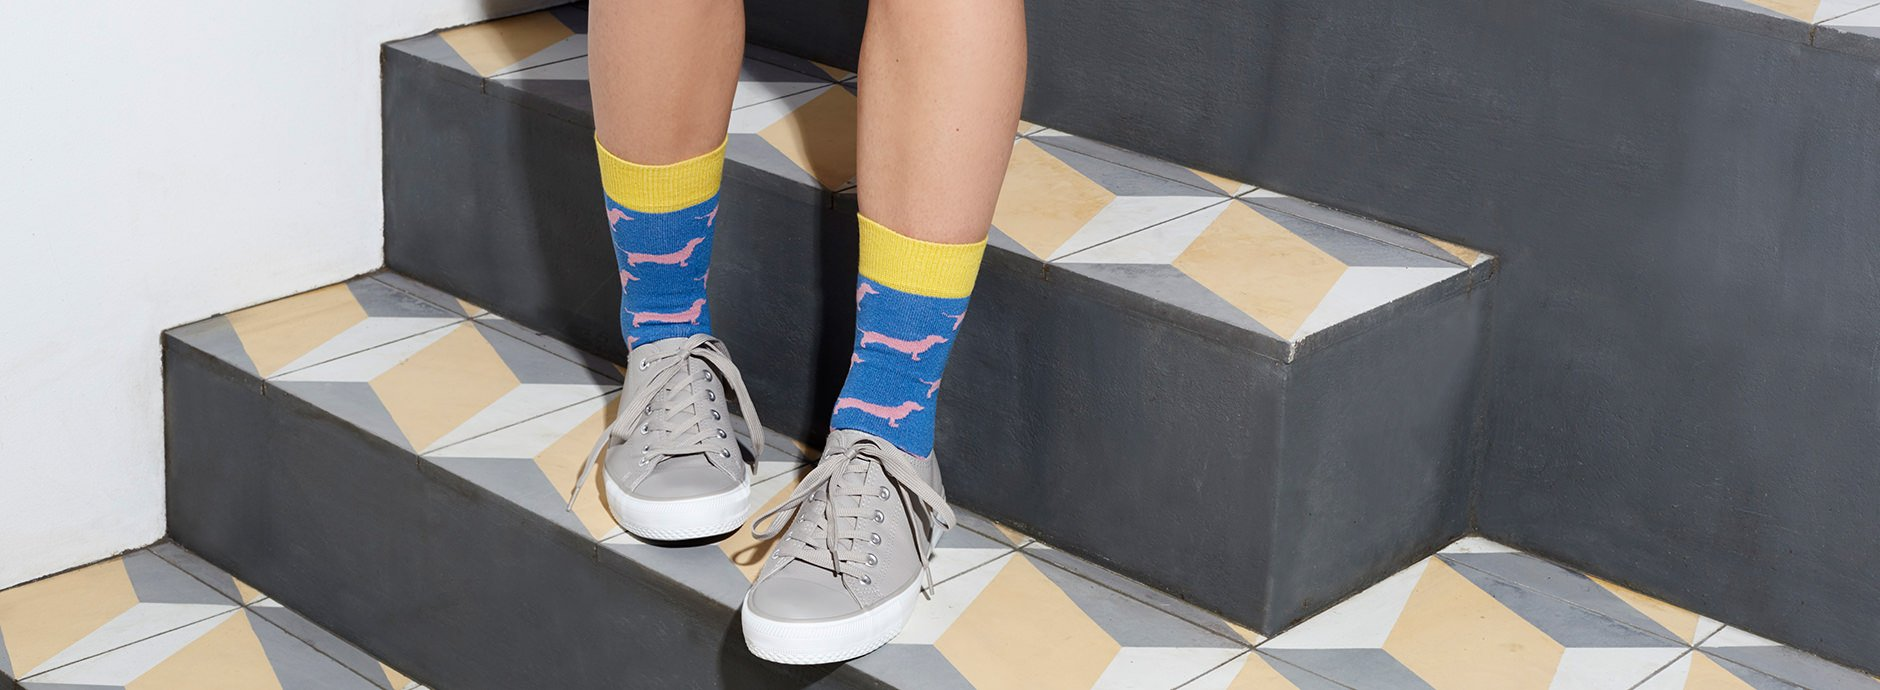 Catherine Tough Socks Perfect For Lock-down and Social Distancing at Catherine Tough